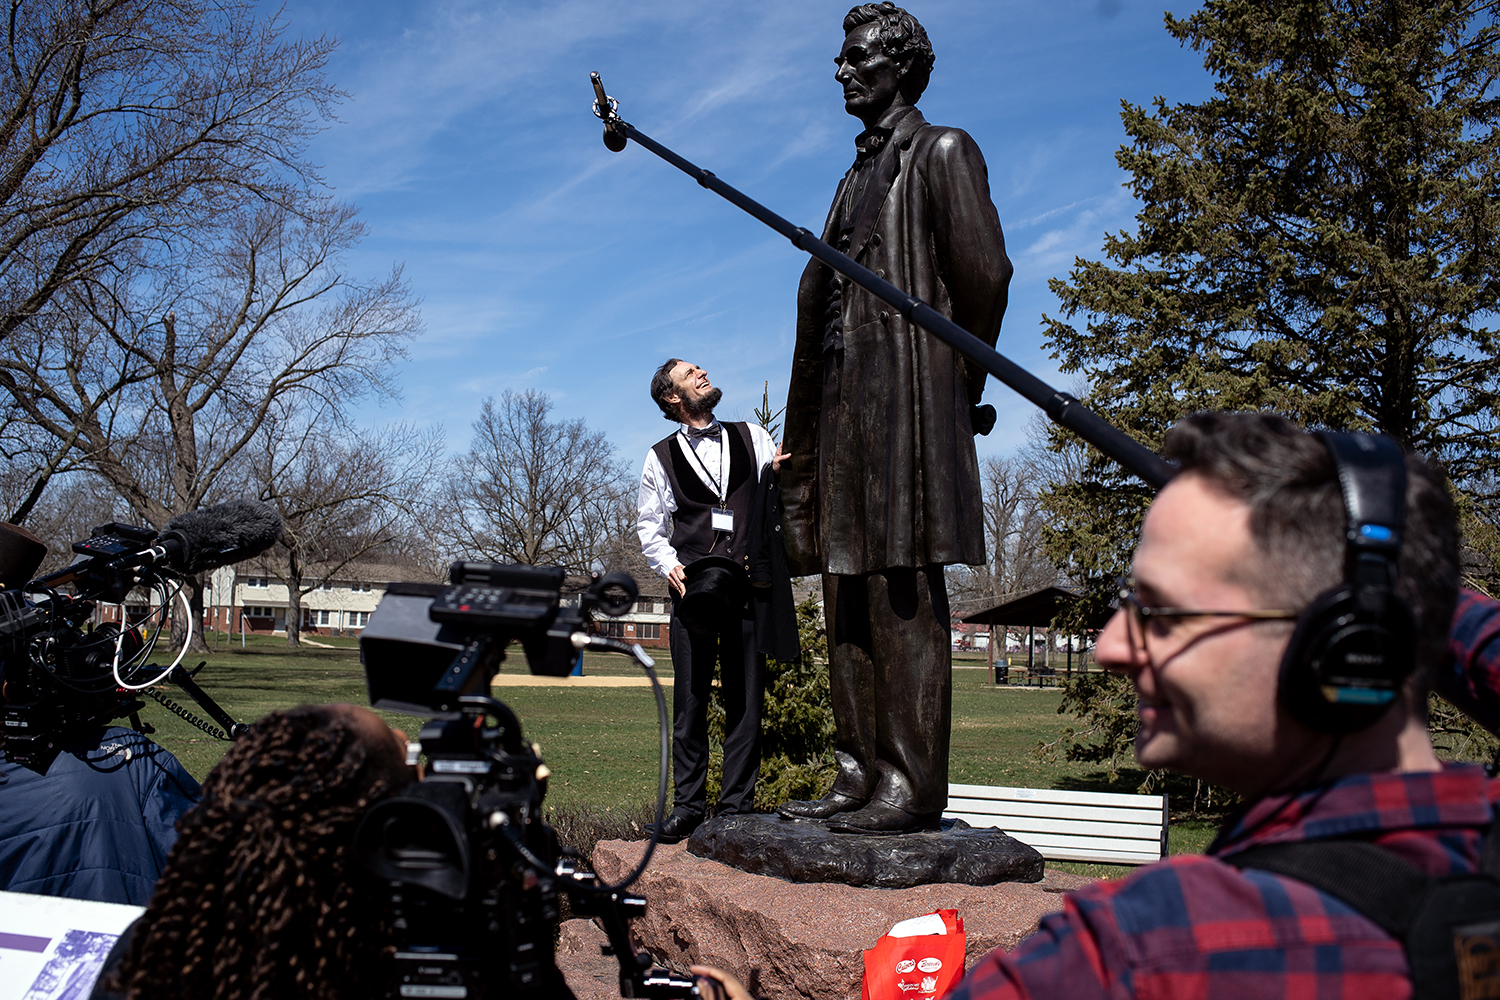 Kevin Wood is filmed in Taylor Park by a crew from Vice Media during the Association of Lincoln Presenters annual convention Friday, April 20, 2018 in Freeport, Ill. [Rich Saal/The State Journal-Register]